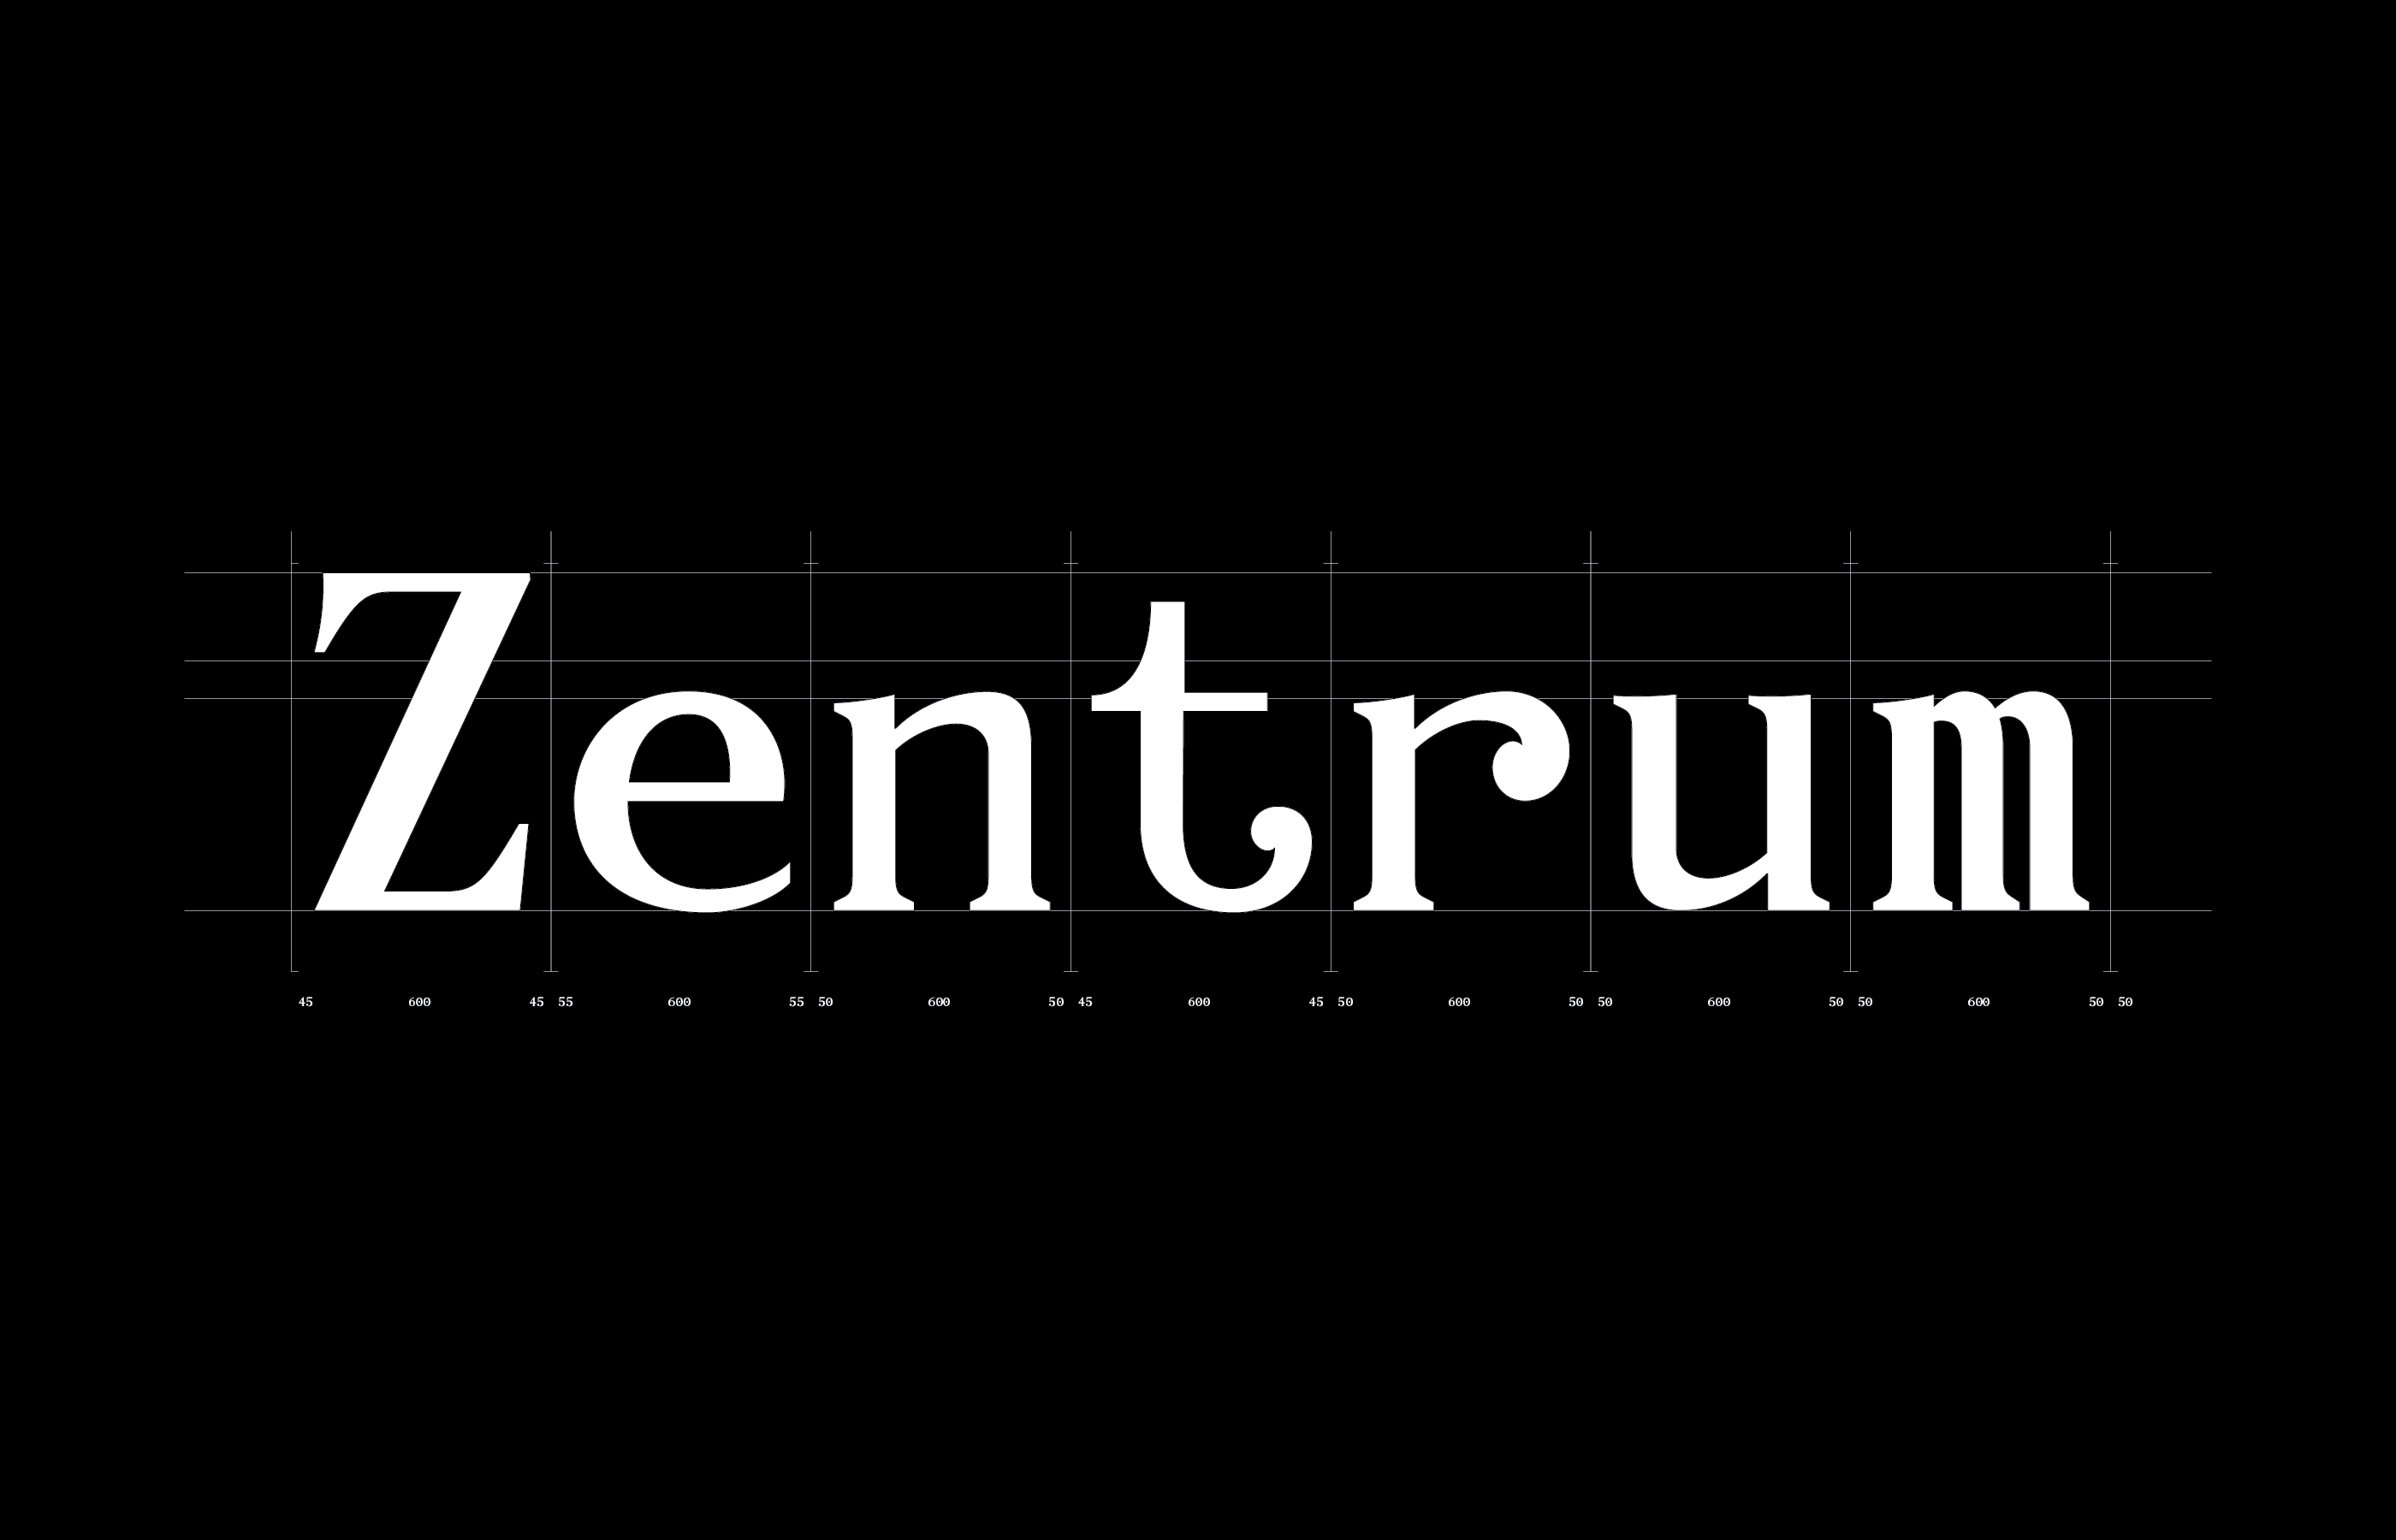 Zentrum_Behance-02